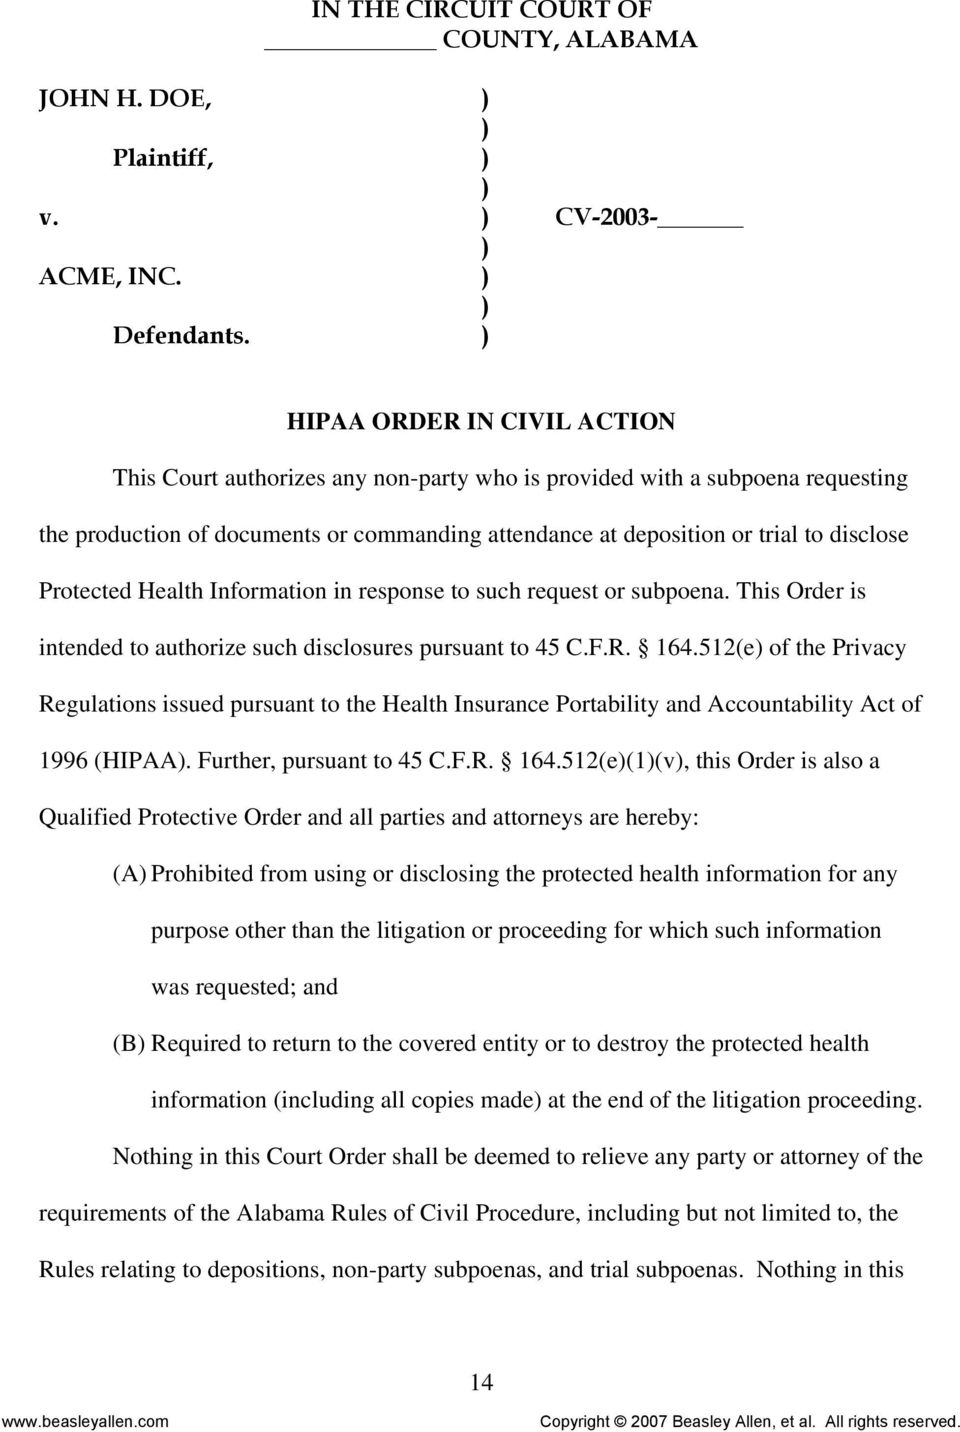 Protected Health Information in response to such request or subpoena. This Order is intended to authorize such disclosures pursuant to 45 C.F.R. 164.